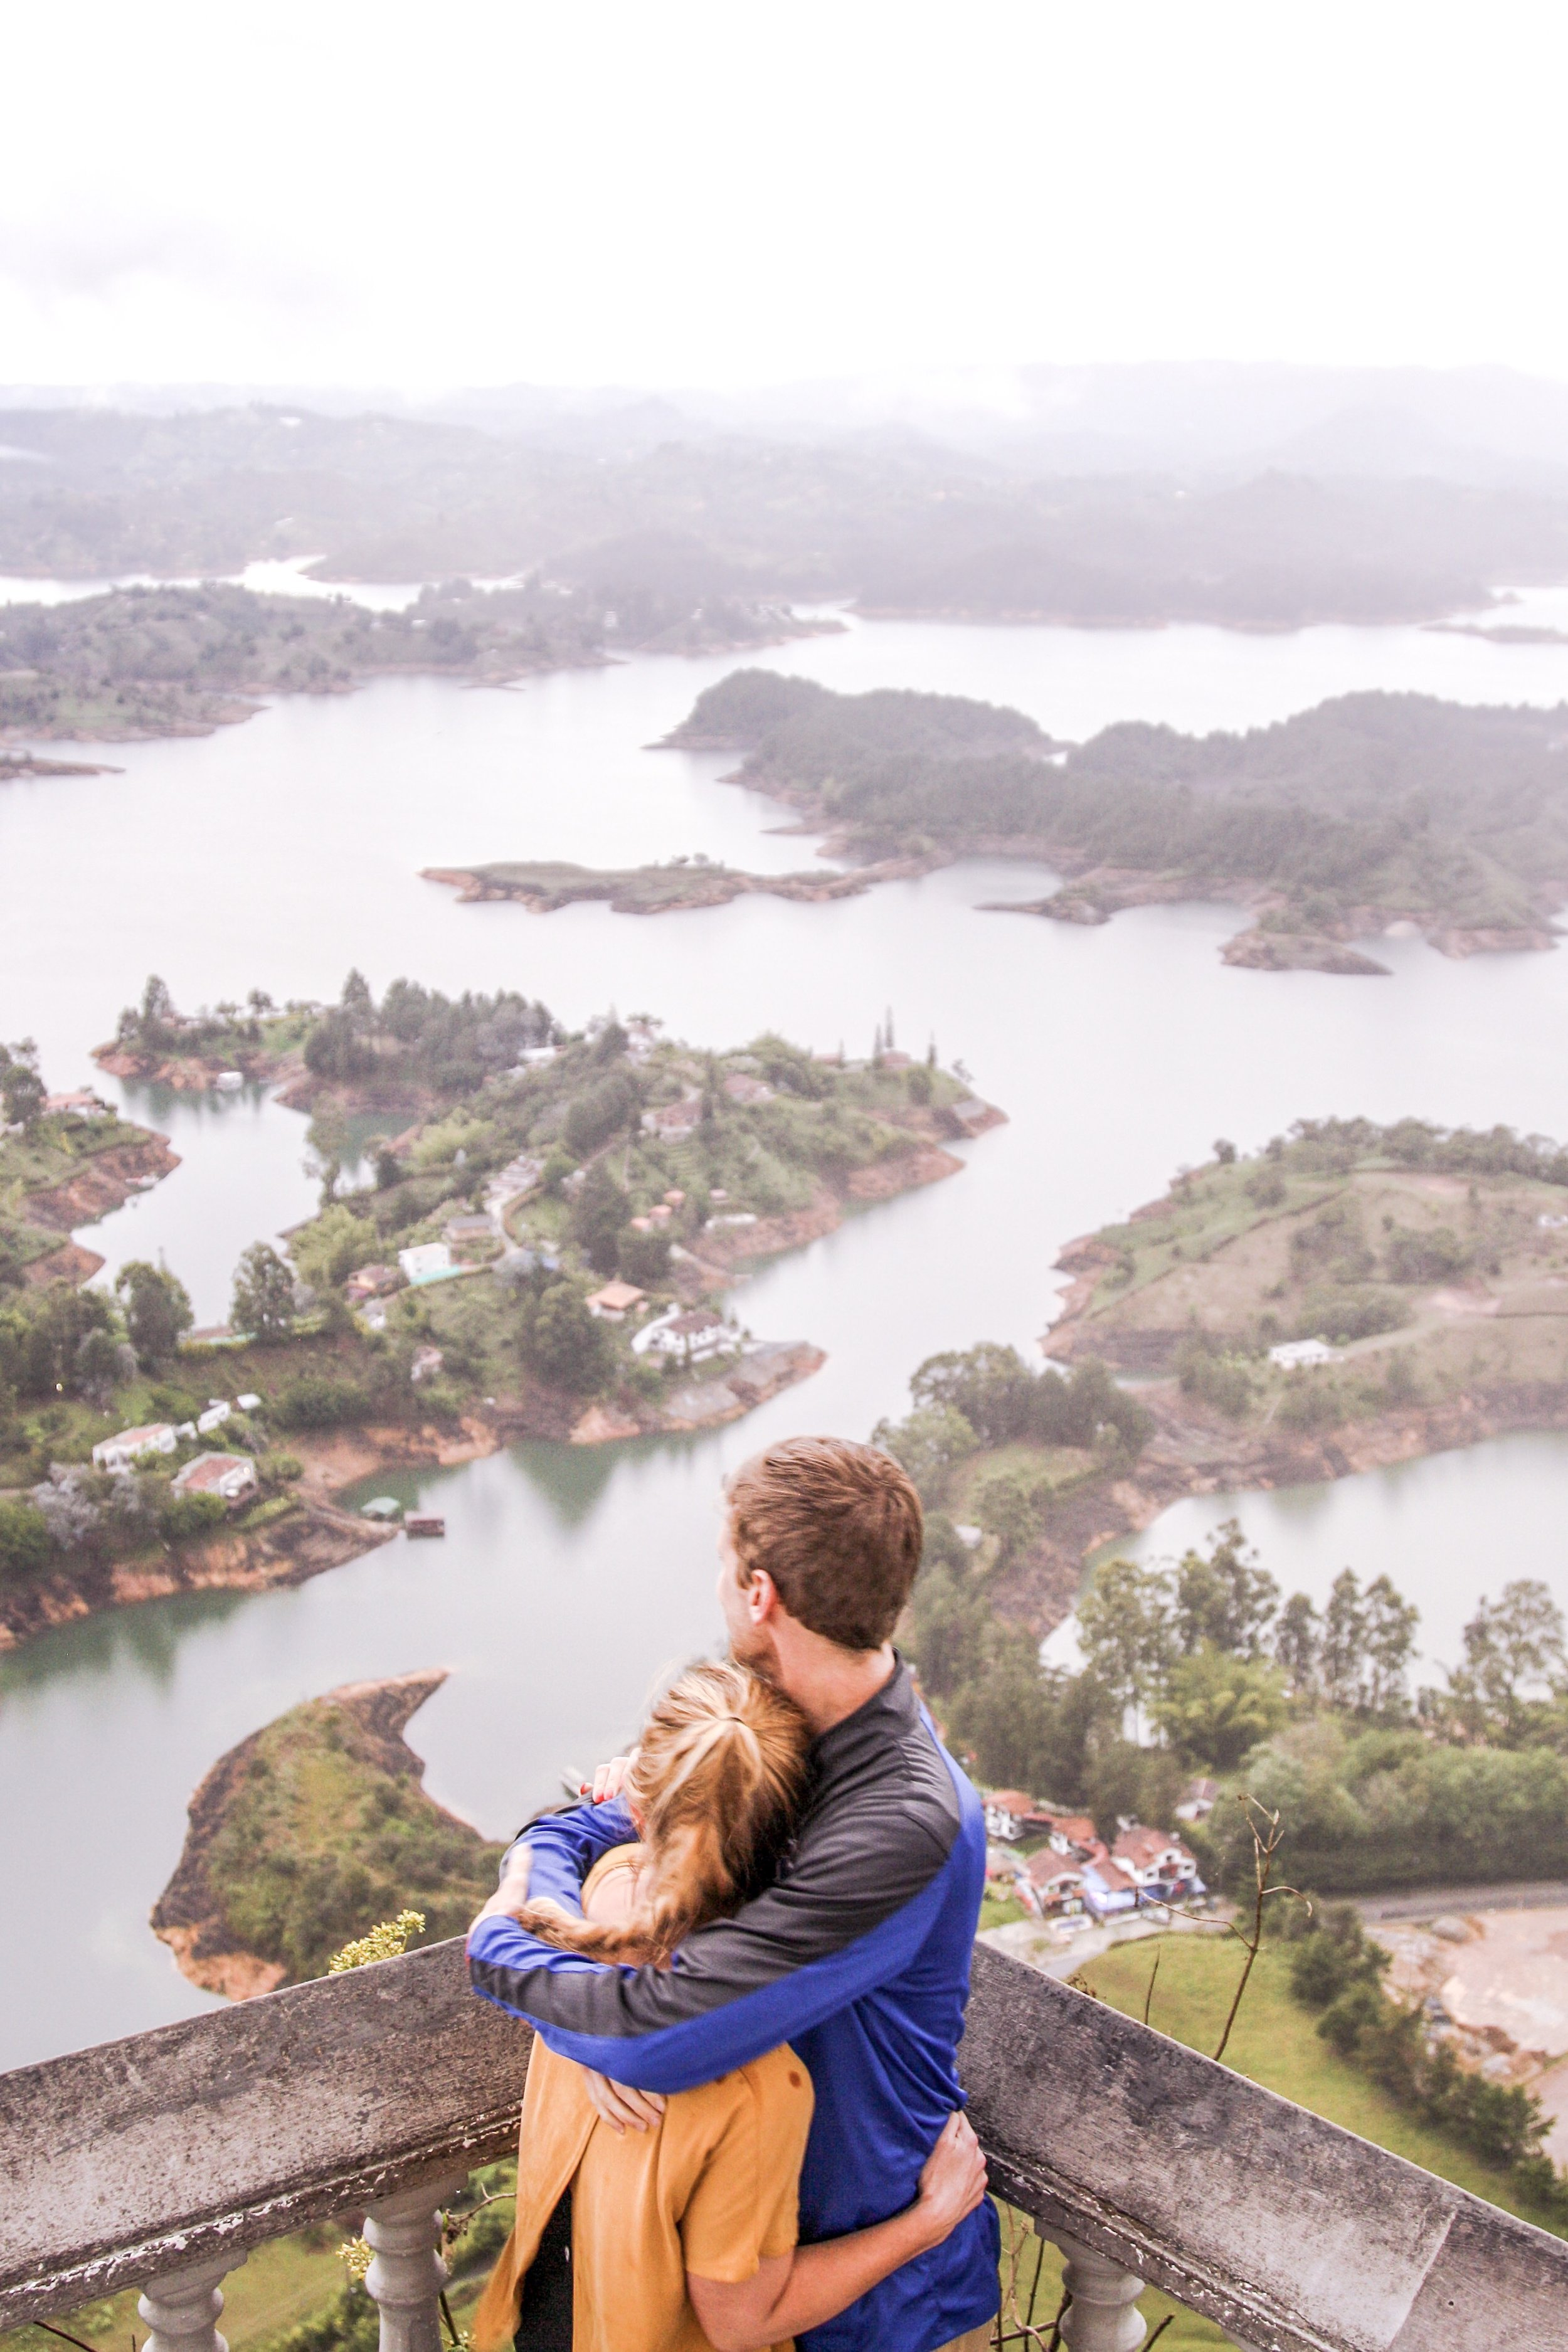 Our friend J.J. took this photo for us in Guatape, Colombia using my DSLR camera.